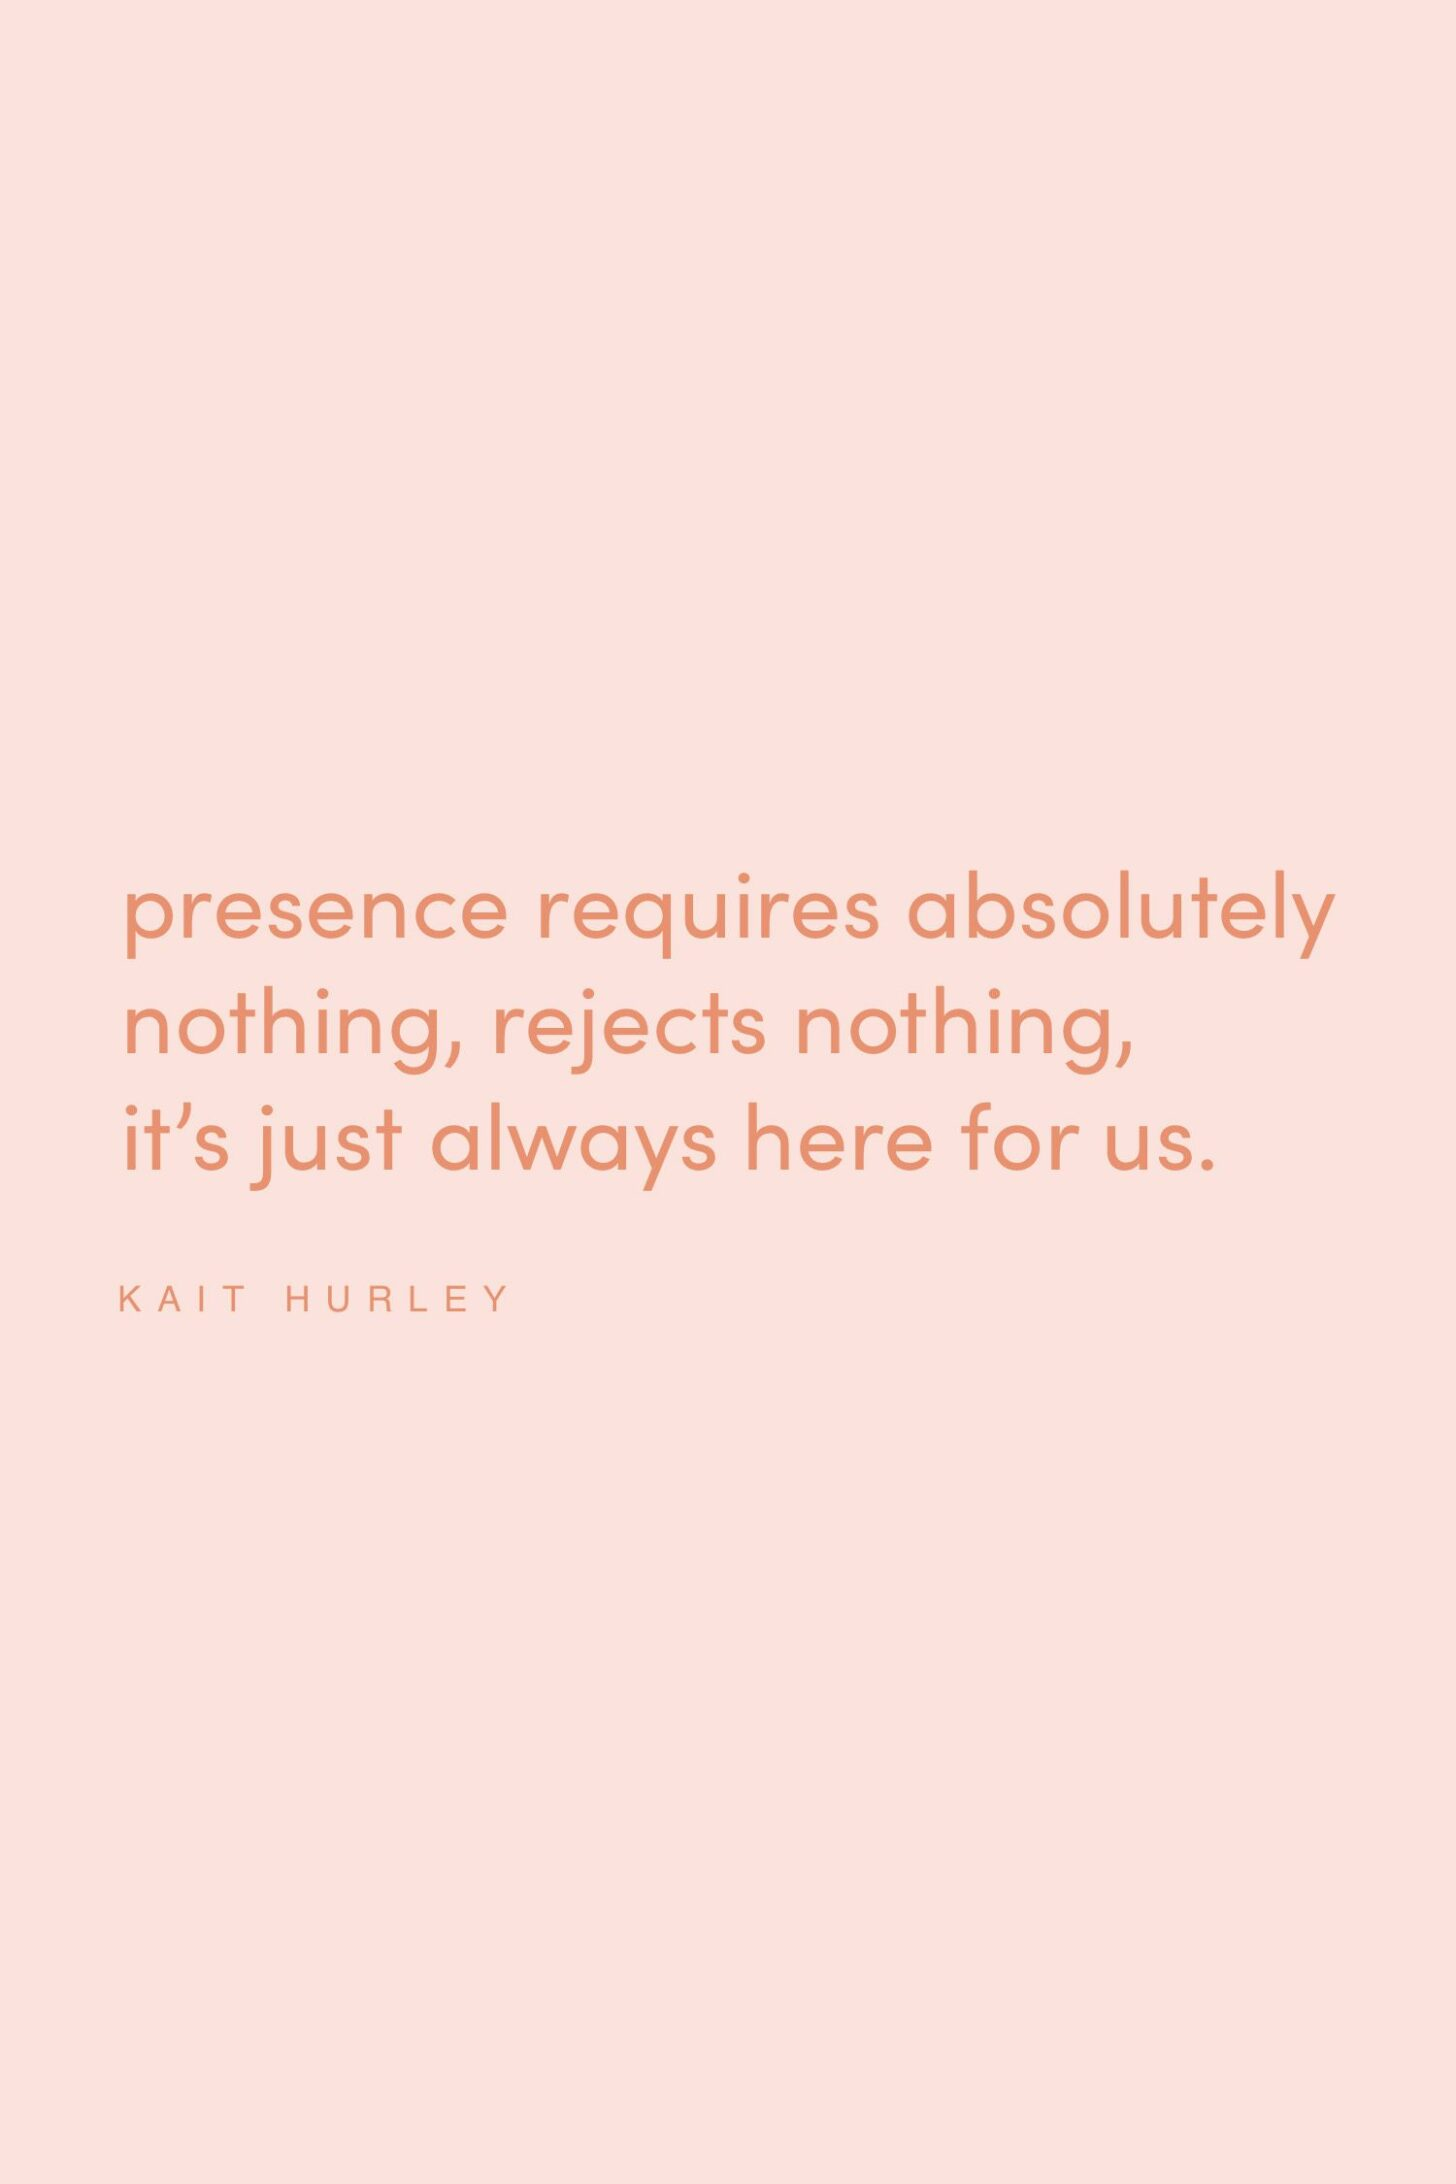 Quote on presence by Kait Hurley on the Feel Good Effect Podcast #realfoodwholelife #feelgoodeffectpodcast #motivationalquote #positivityquote #inspirationalquote #selfcarequote #mindfulnessquote #awarenessquote